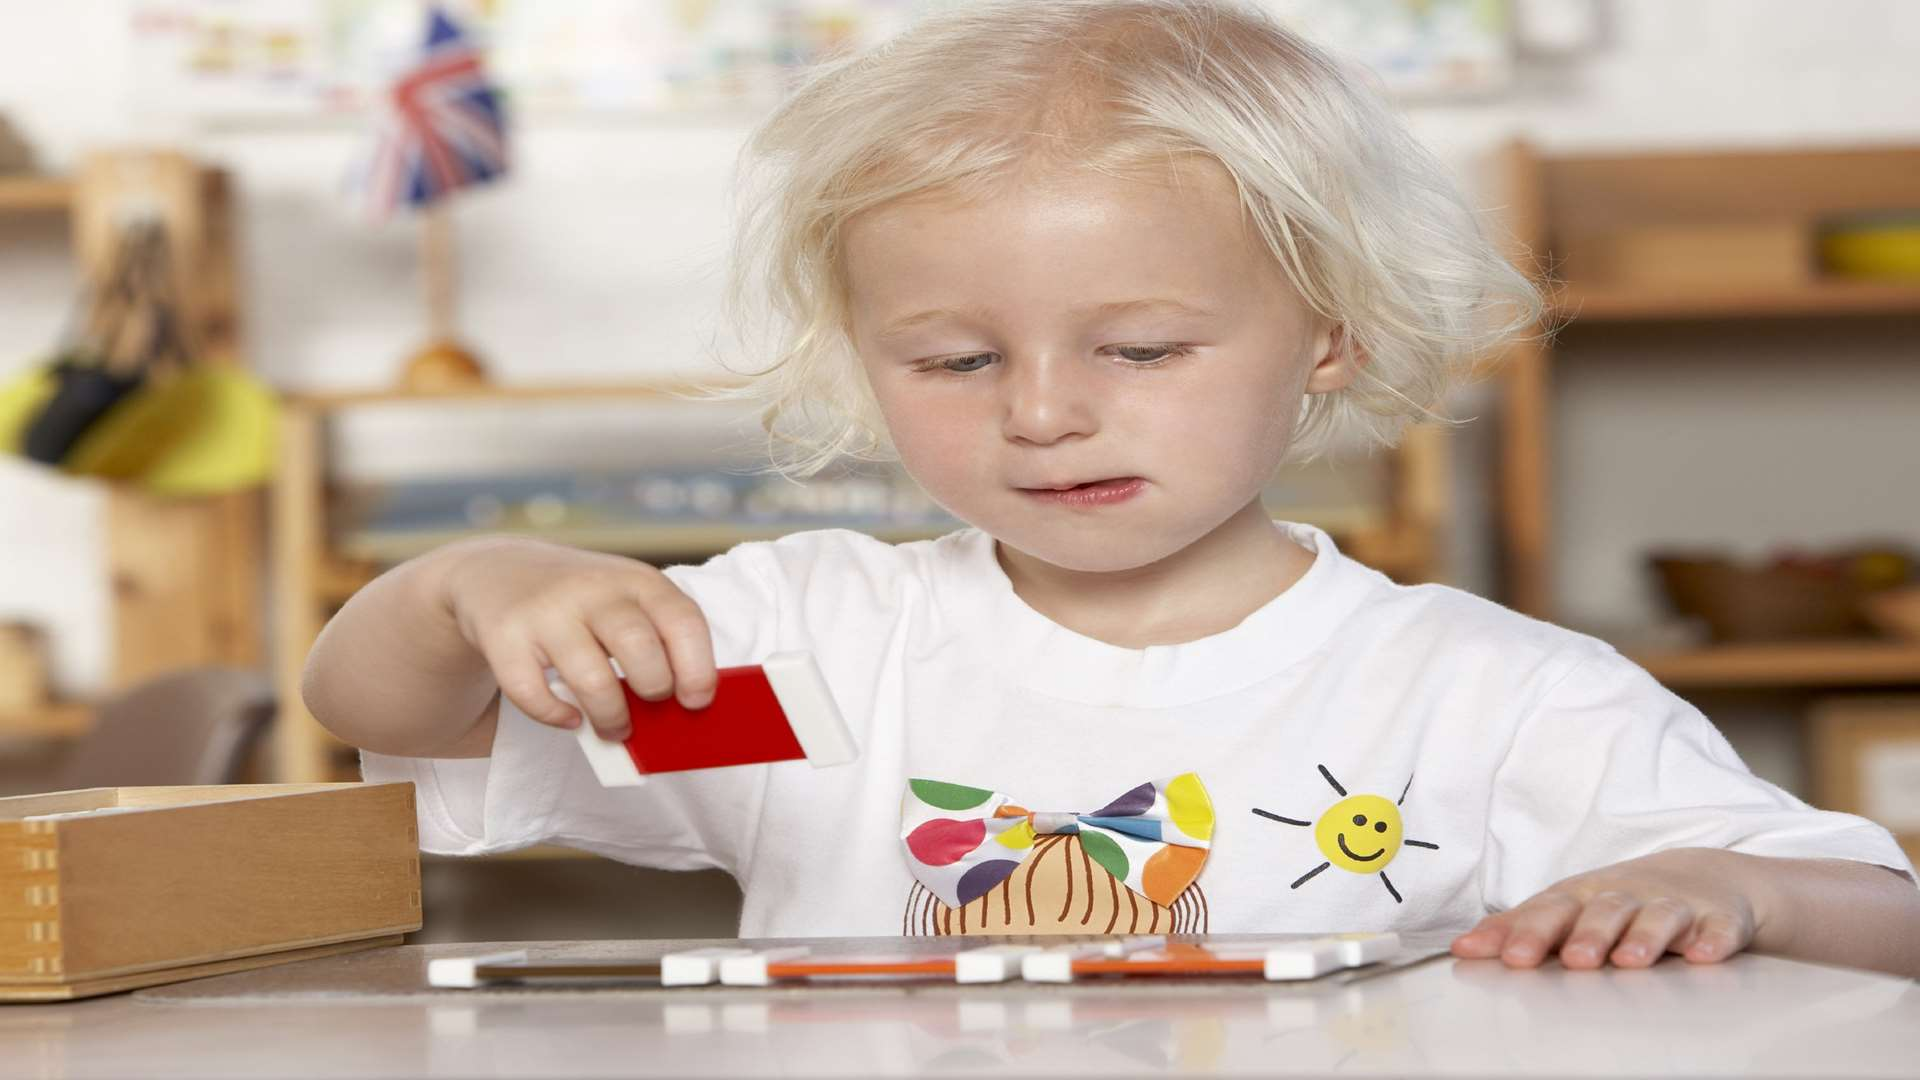 Nurseries are resorting to coffee mornings to stay afloat. Picture: Istock/monkeybusinessimages